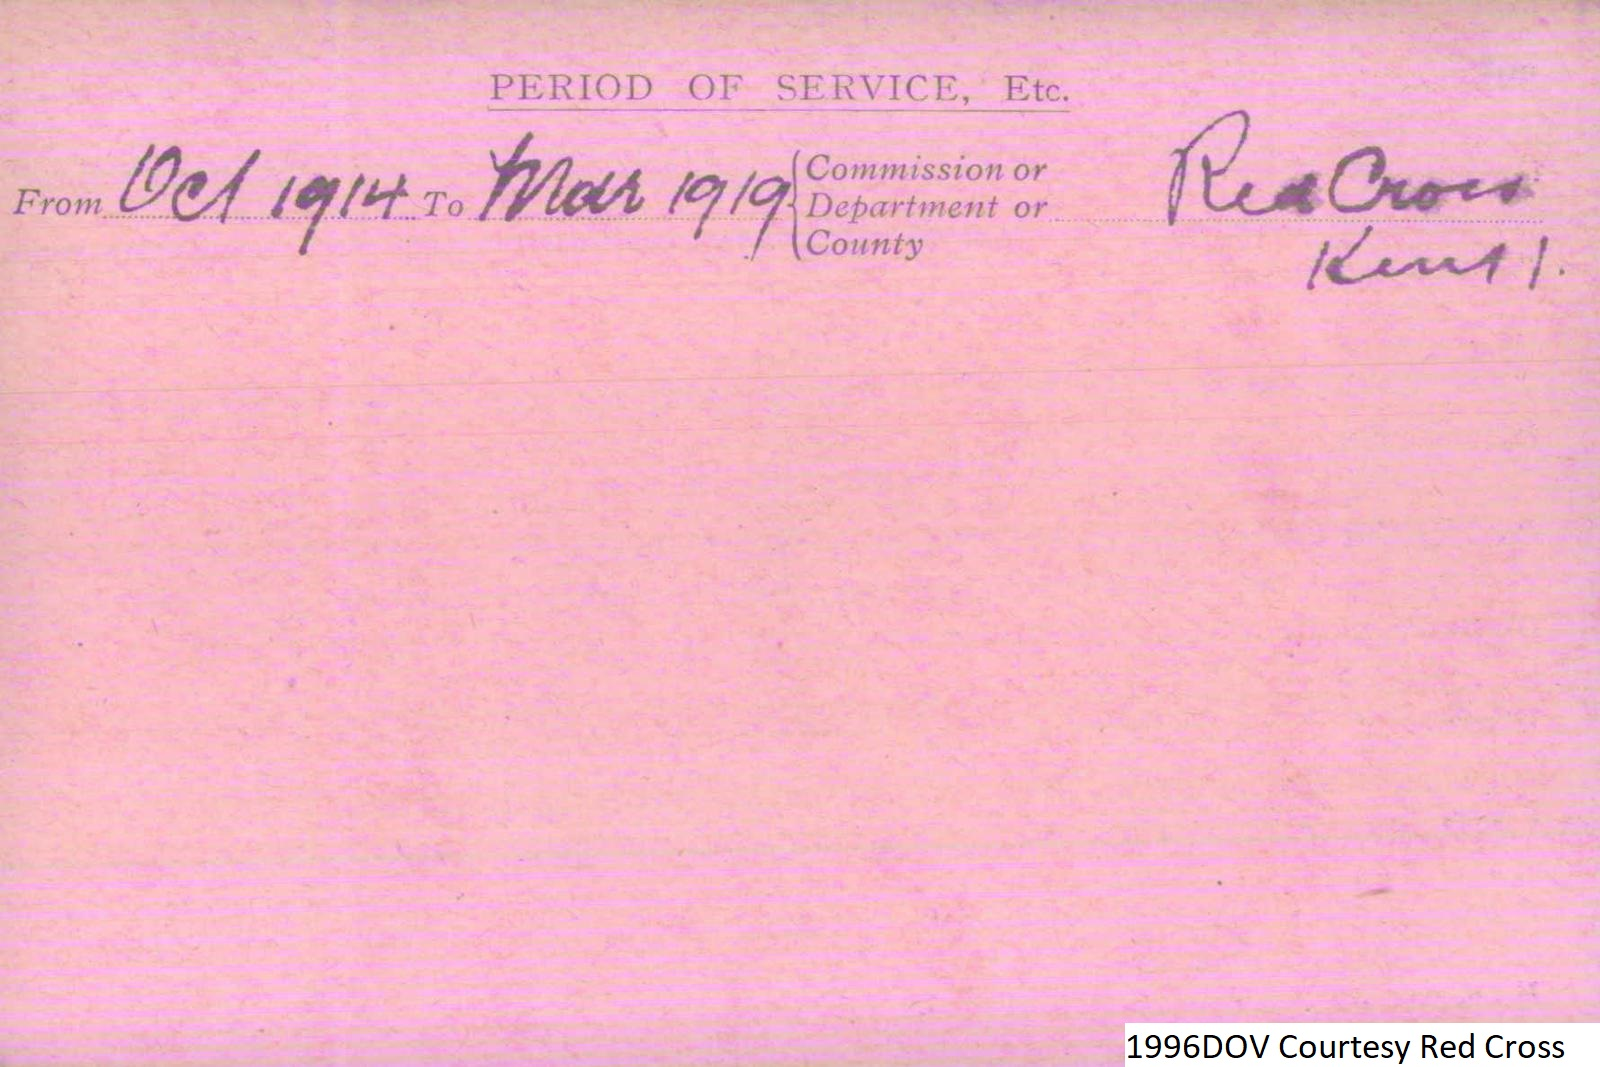 Percy Wright VAD Card